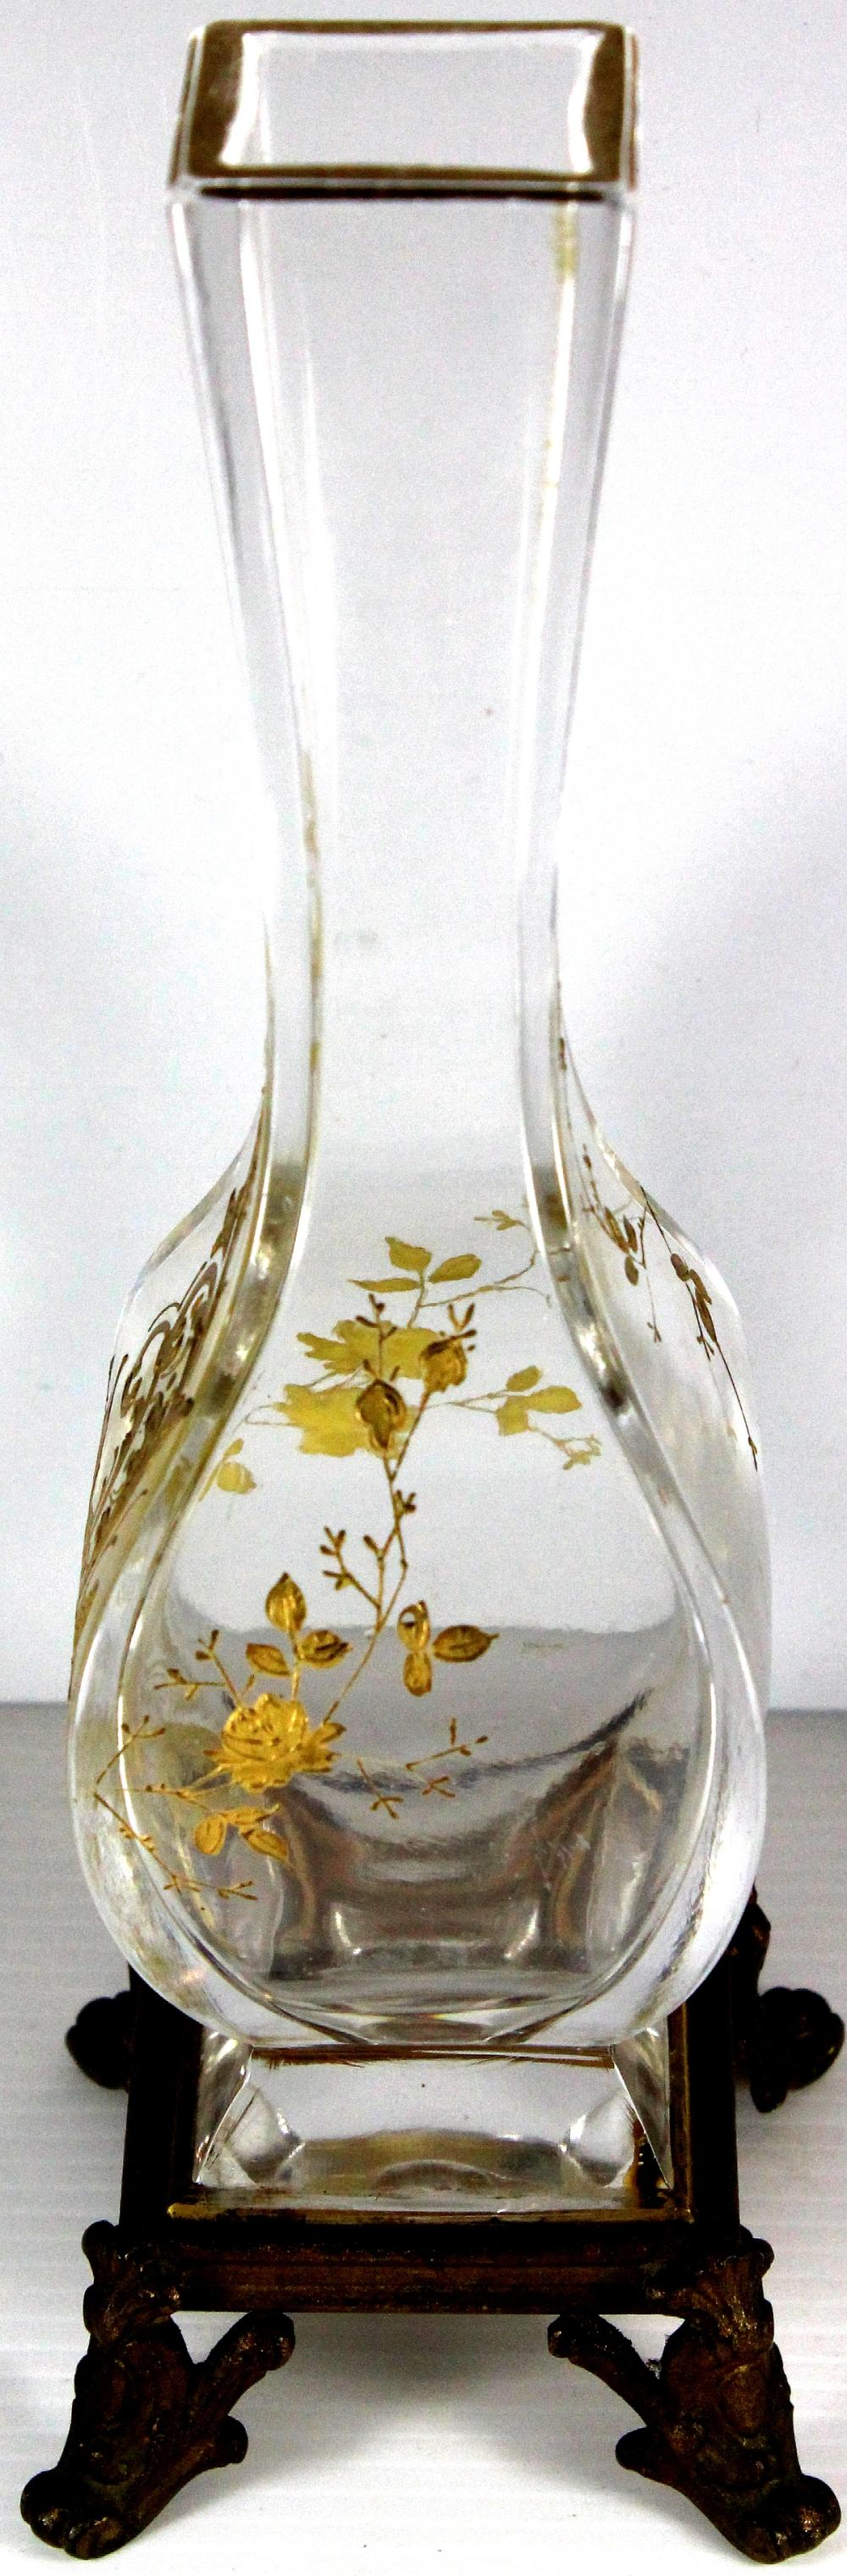 Elegant Antique Glass Vase on a Gold-painted stand